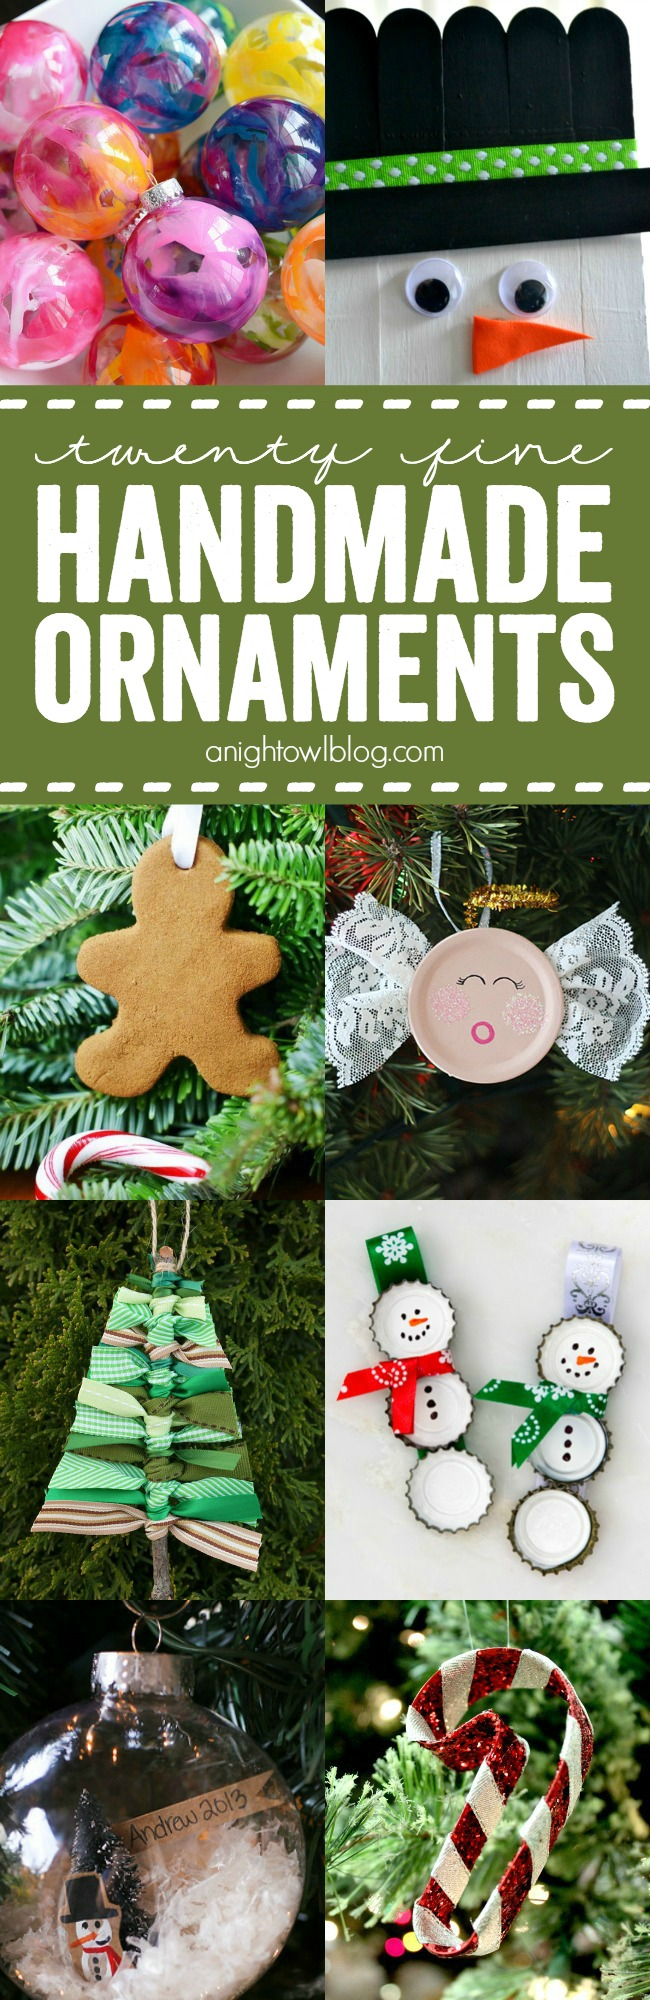 25 Handmade Christmas Ornaments  A Night Owl Blog